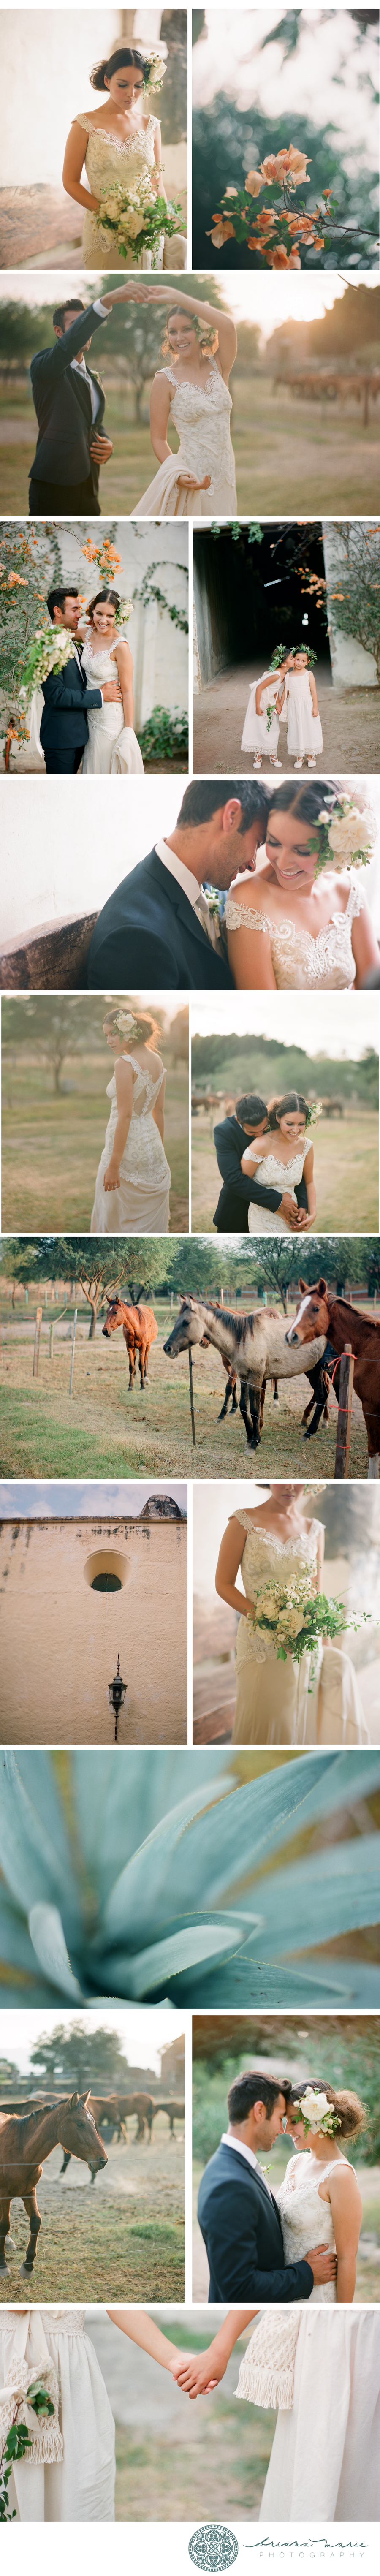 Mexico Fine Art Film Wedding Photography